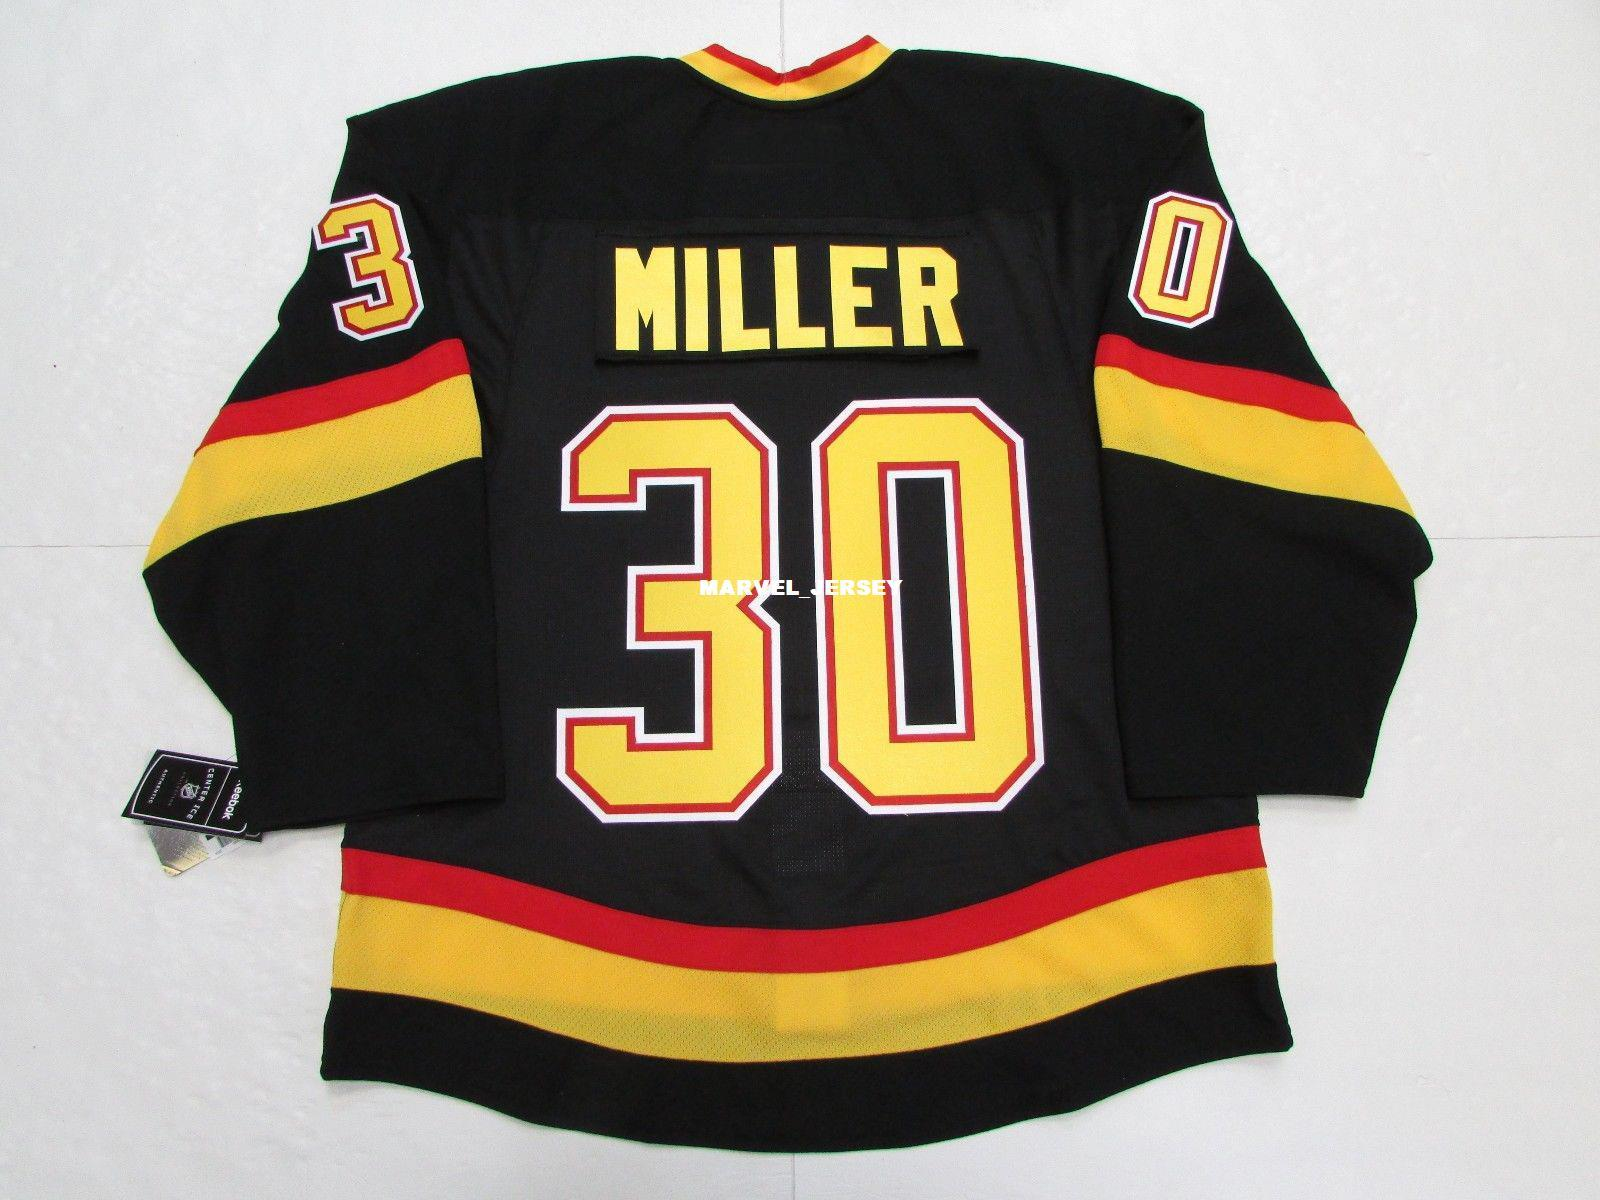 premium selection f81a5 bfd55 2019 Cheap Custom RYAN MILLER VANCOUVER CANUCKS FLYING SKATE JERSEY Stitch  Add Any Number Any Name Mens Hockey Jersey XS 5XL From Marvel_jersey, ...